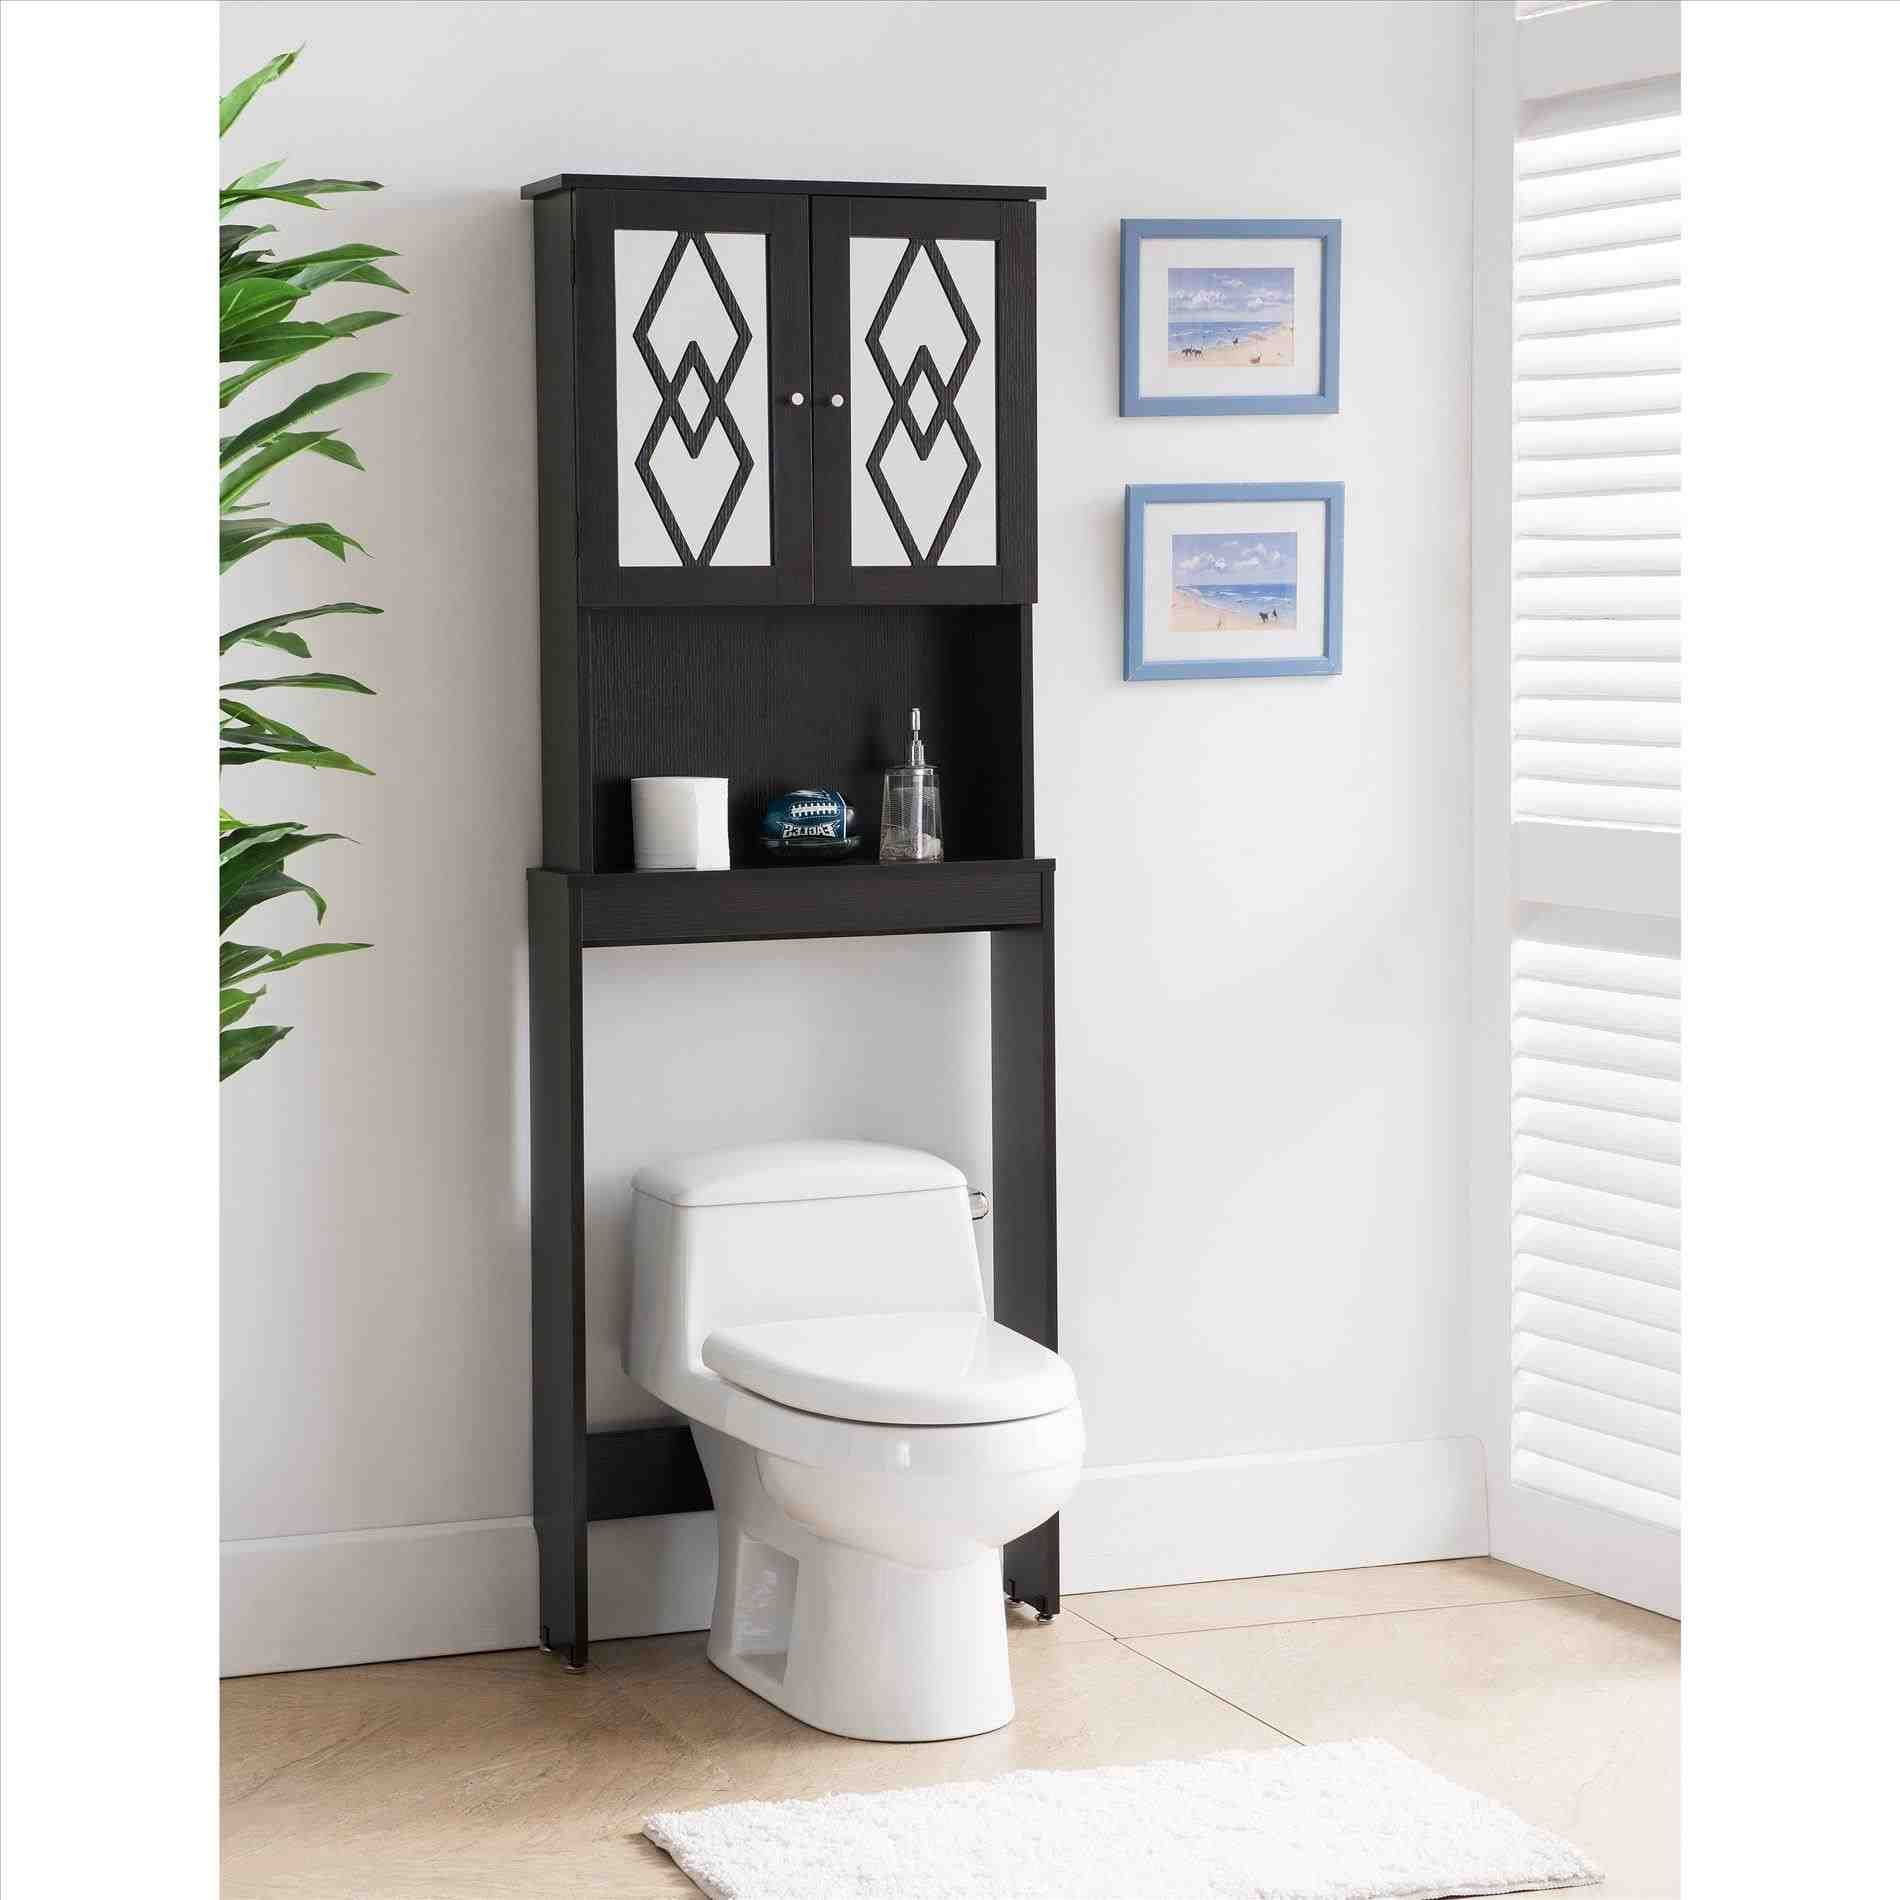 Bathroom Space Saver Ikea This Bathroom Etagere Ikea 97 Lighting For Small Bathrooms Wkz